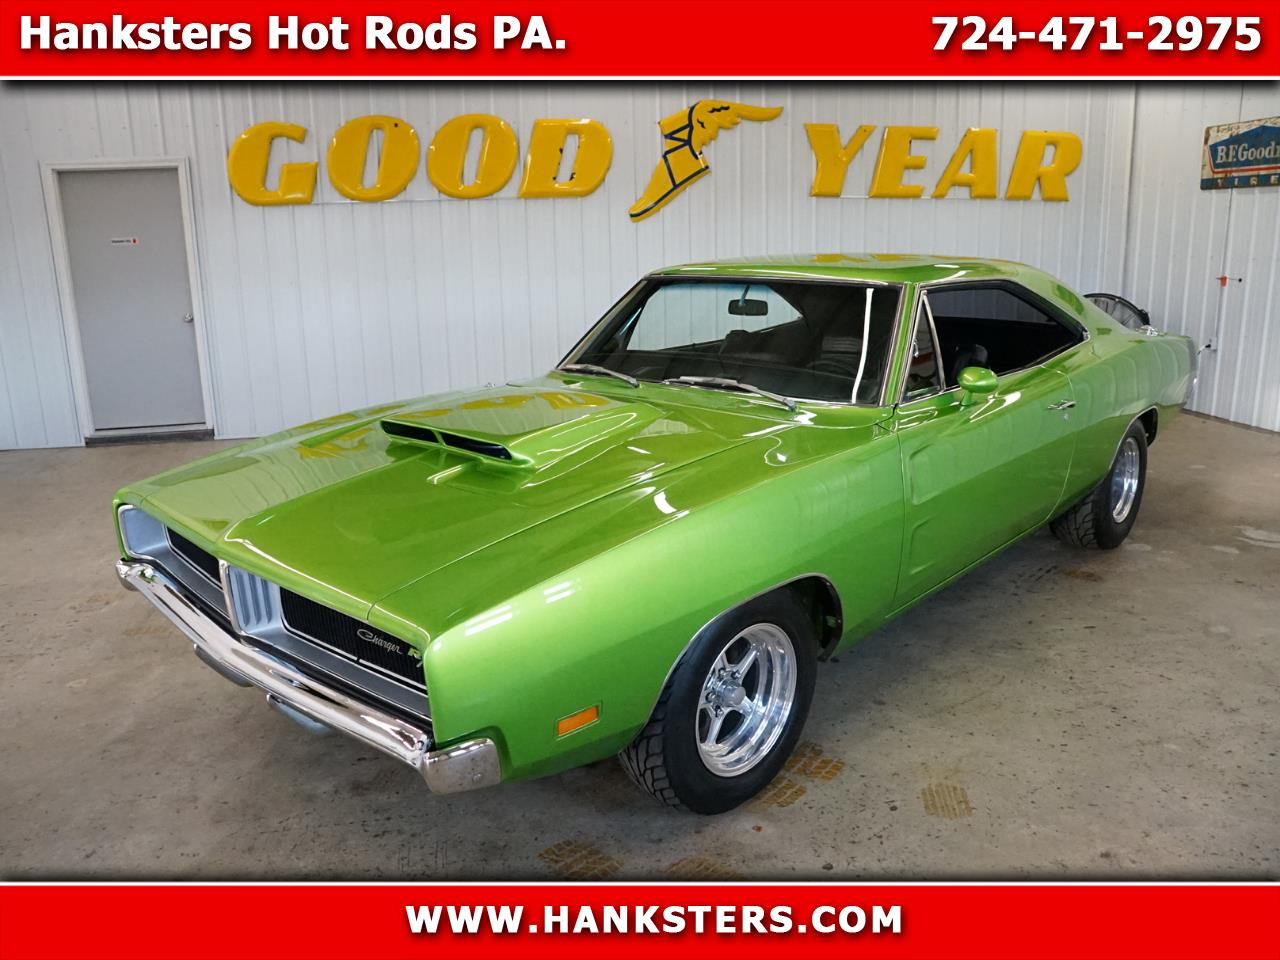 1969 Dodge Charger R/T Hemi